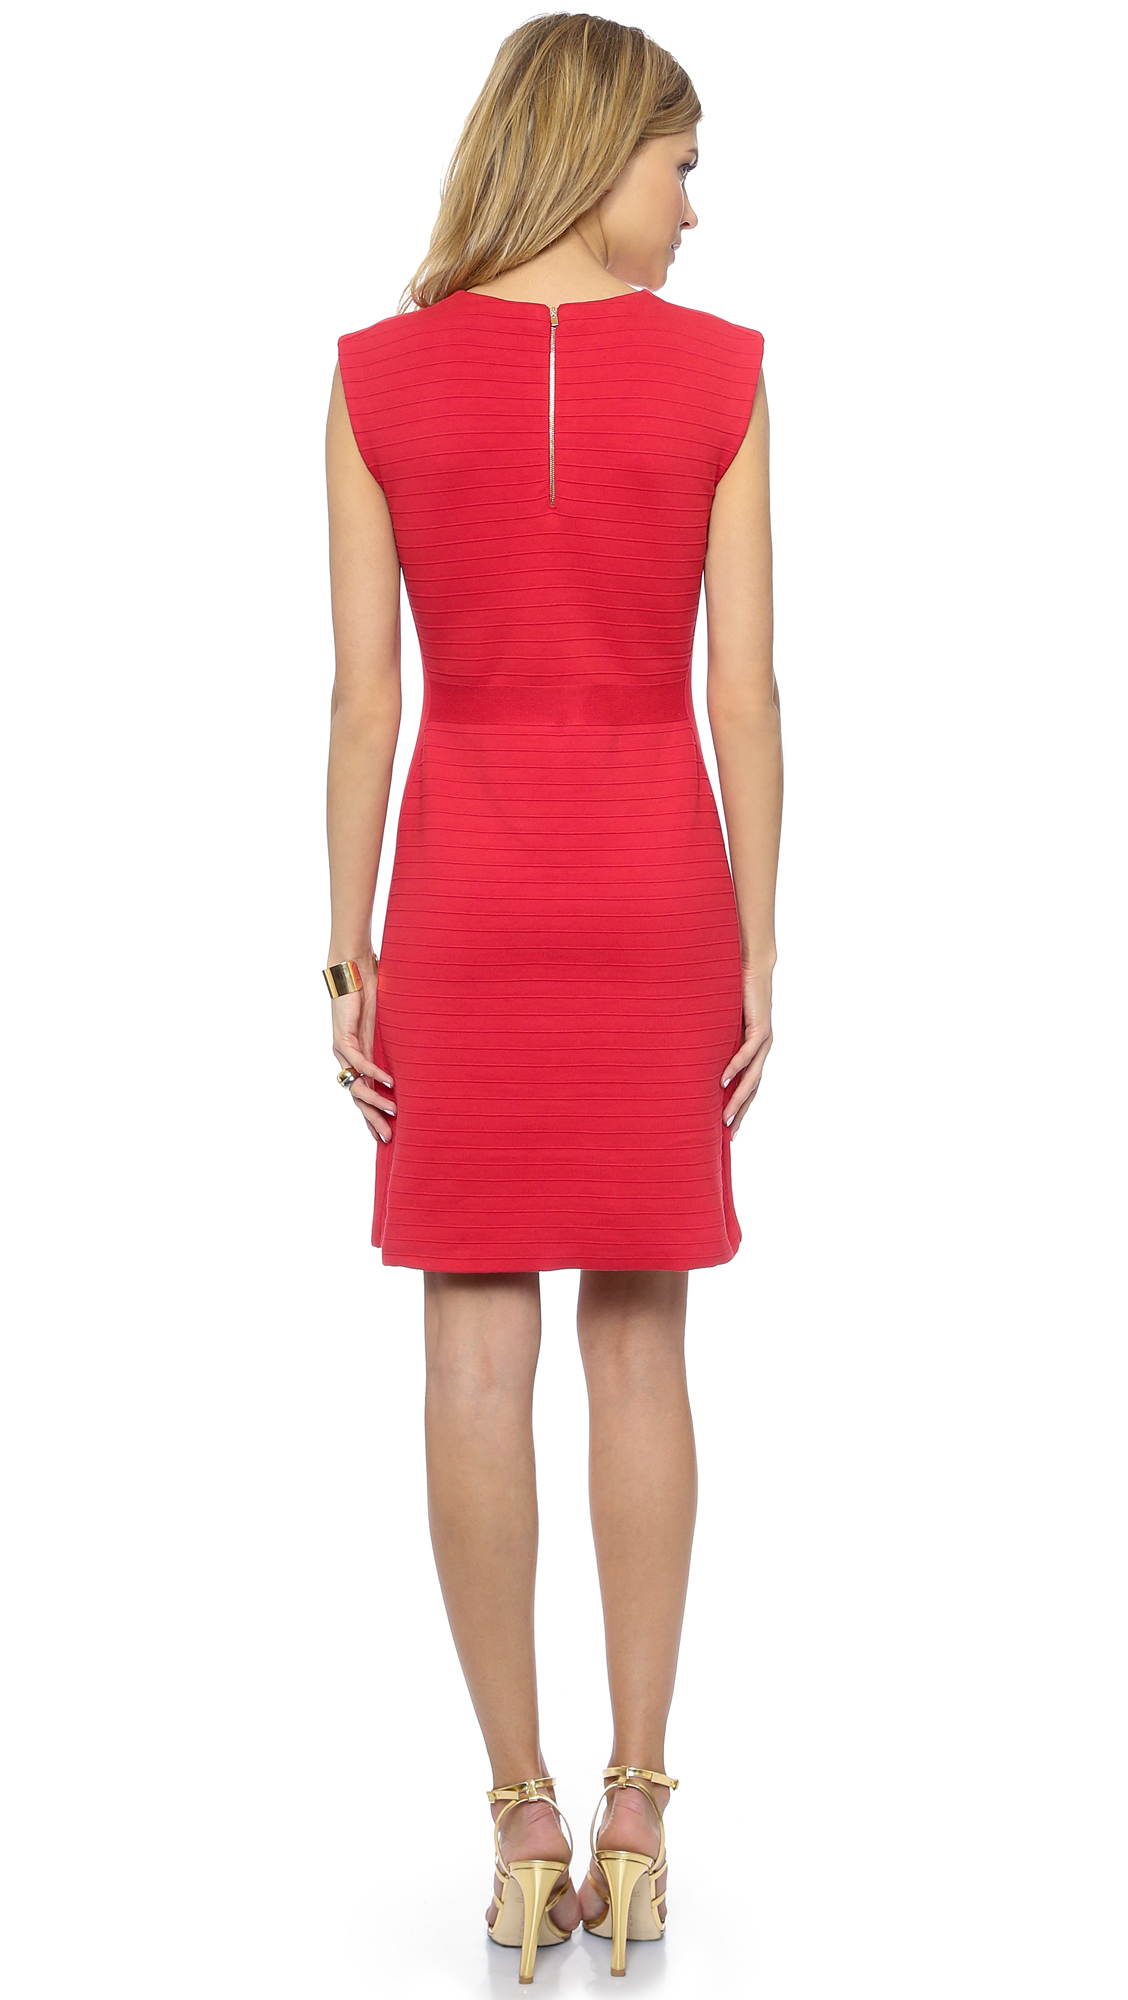 Tory burch Cotton Crew Neck Dress - Brilliant Red in Red | Lyst